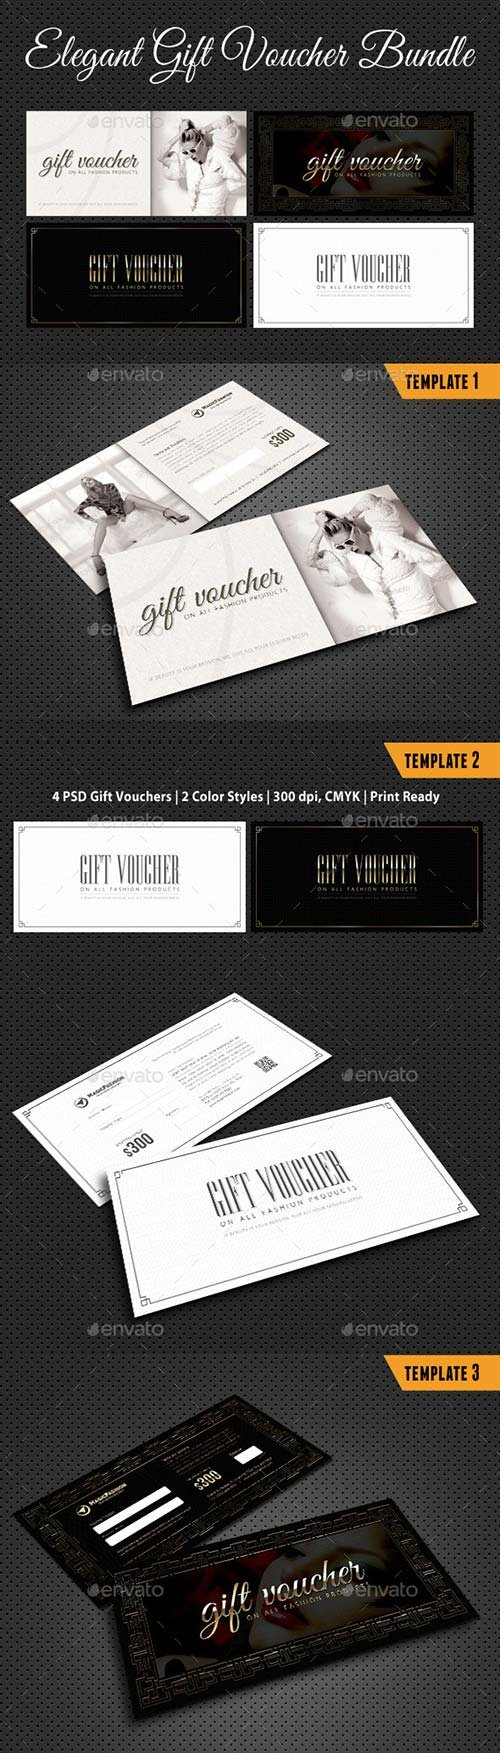 GraphicRiver 3 in 1 Elegant Gift Voucher Bundle 01